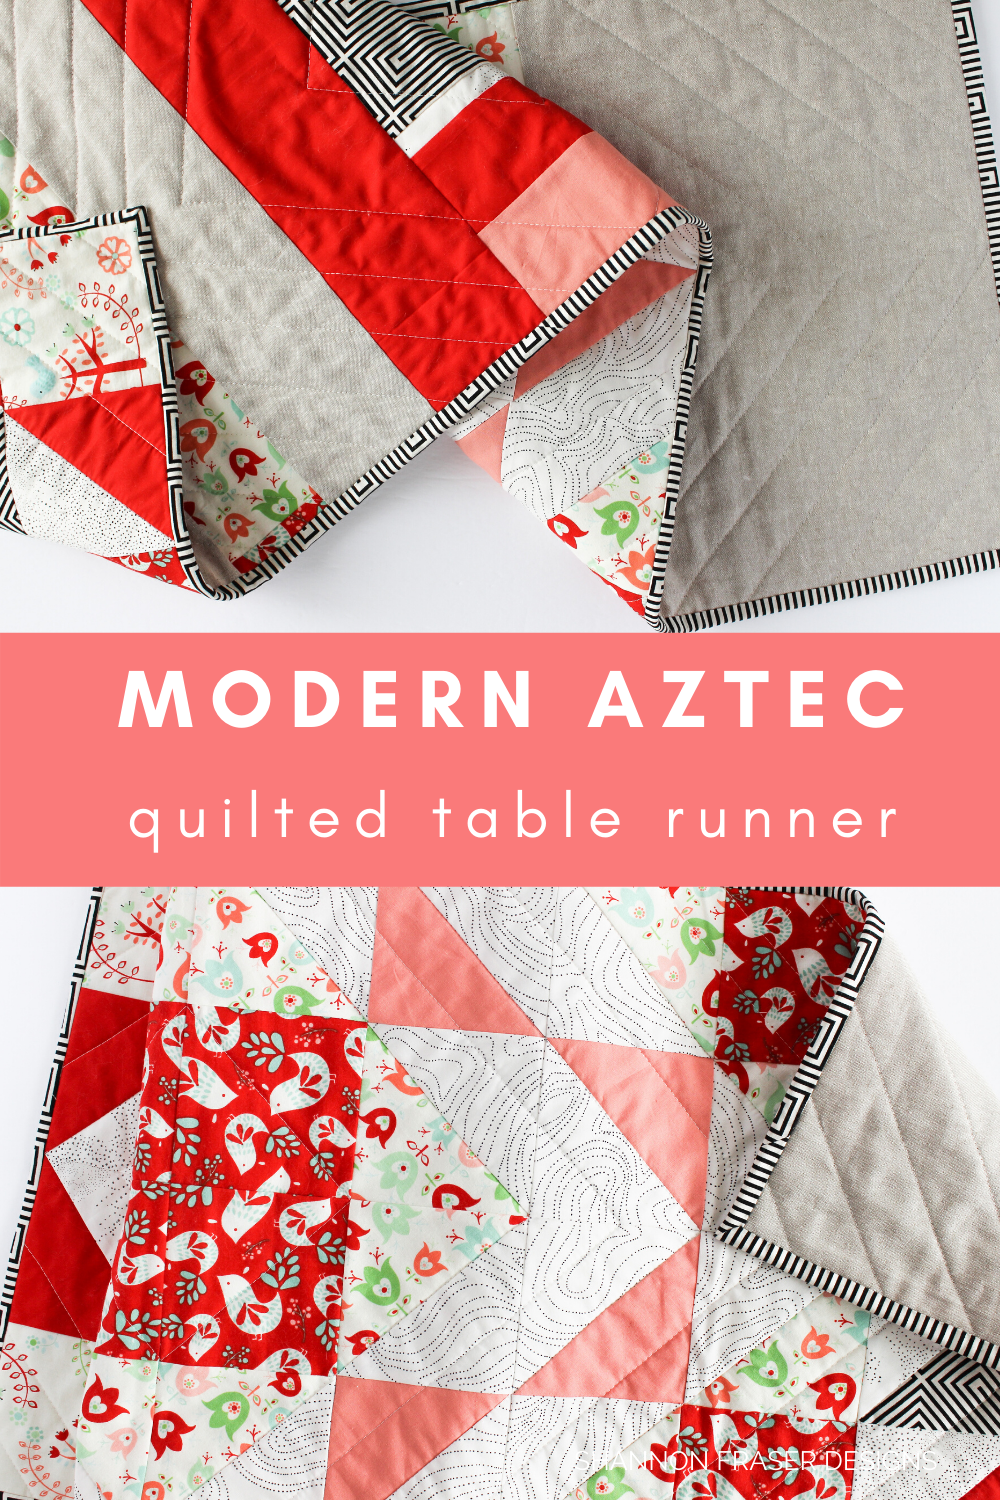 Modern Aztec quilted table runner Scandinavian holiday version in red, coral, essex linen and black and white | Shannon Fraser Designs #tablerunnerpattern